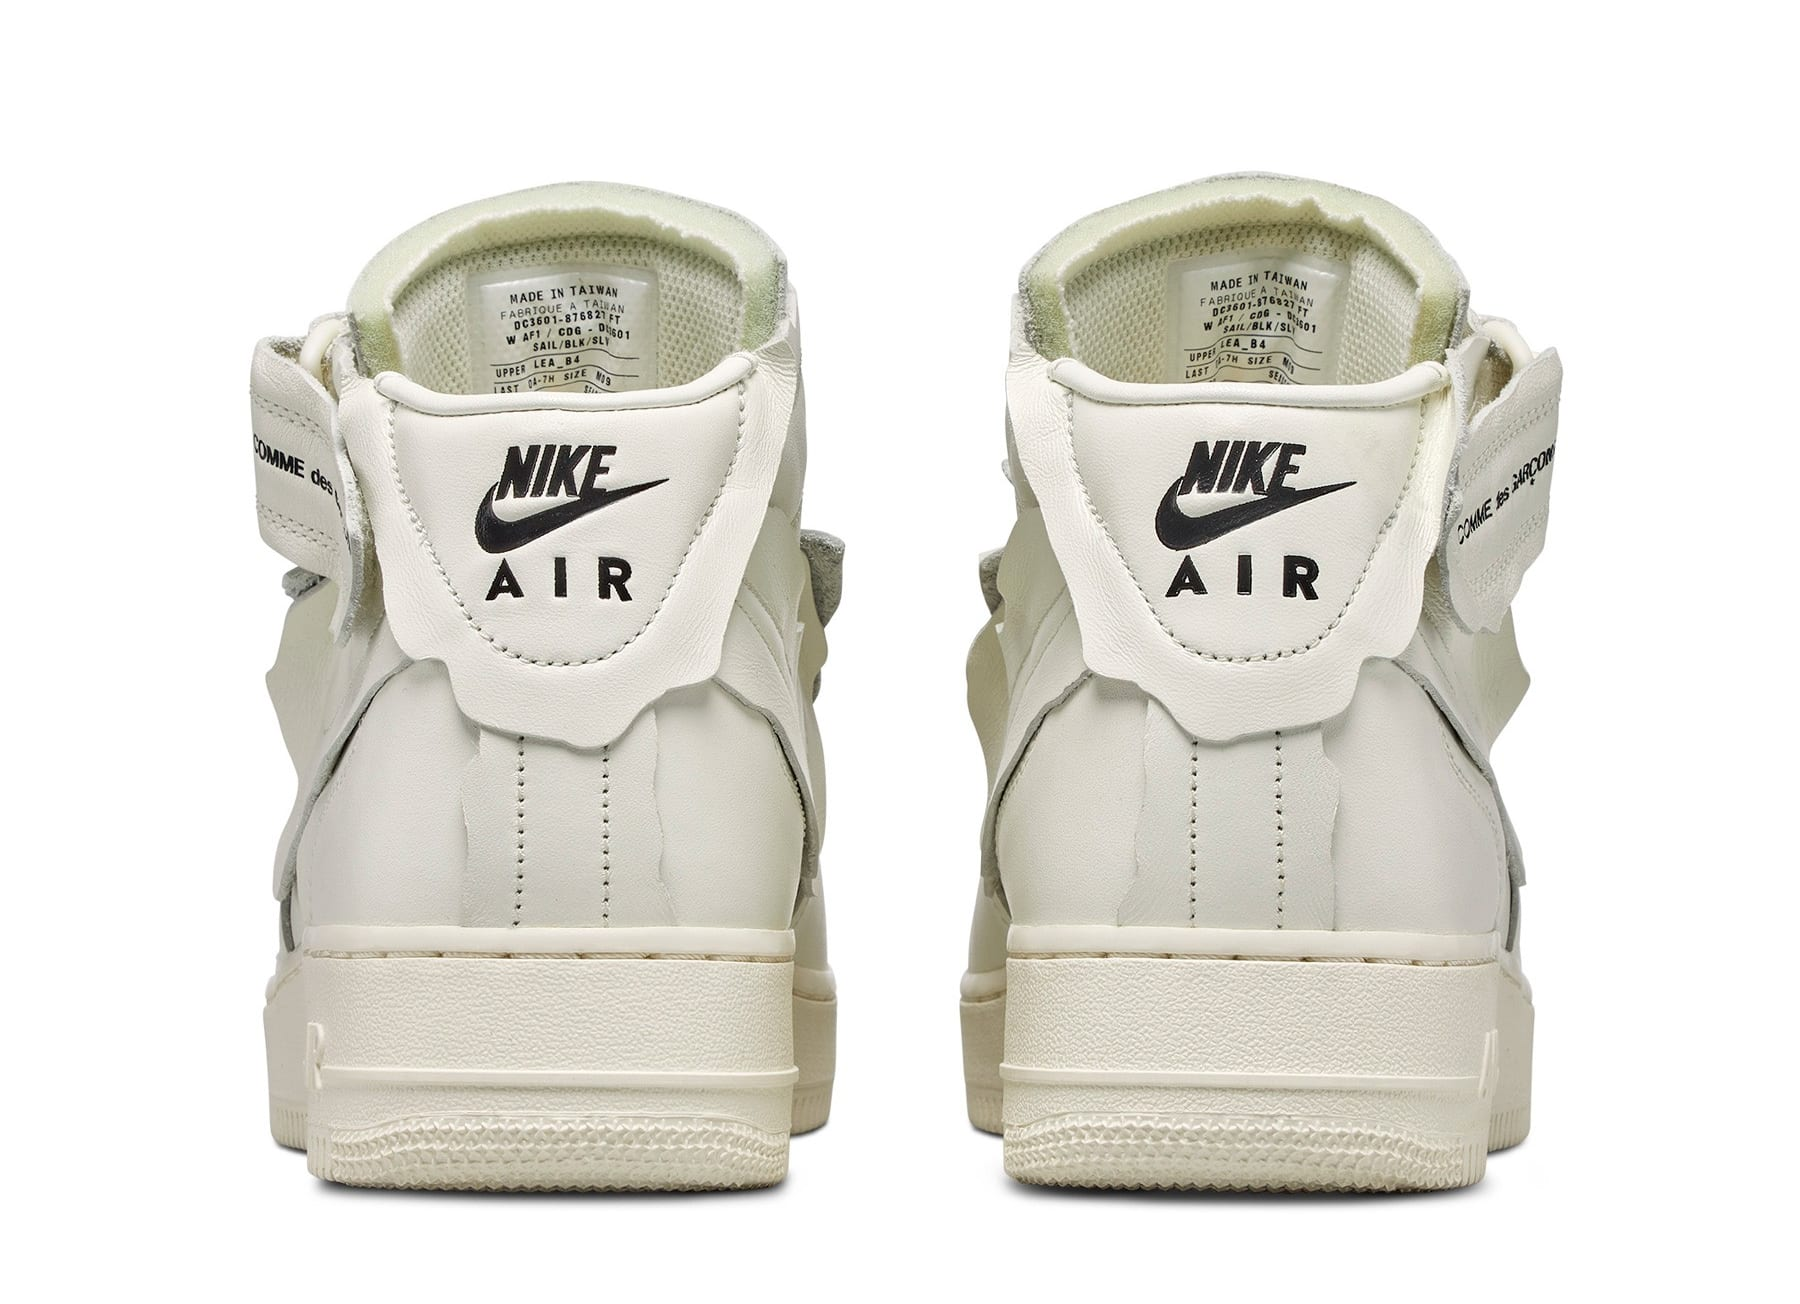 Comme Des Garcons x Nike Air Force 1 Mid 'White' F/W 20 Heel